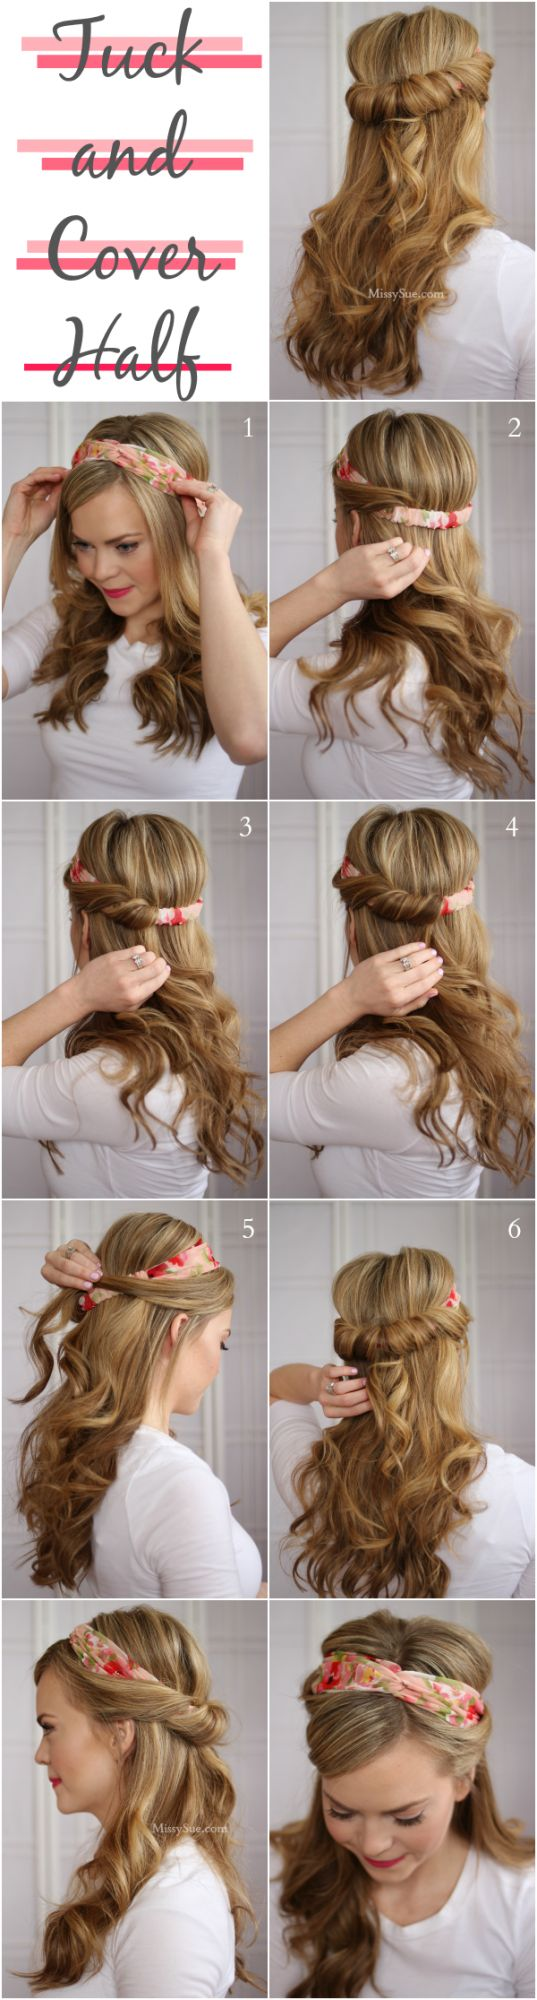 18 Pinterest Hair Tutorials You Need To Try Page Of